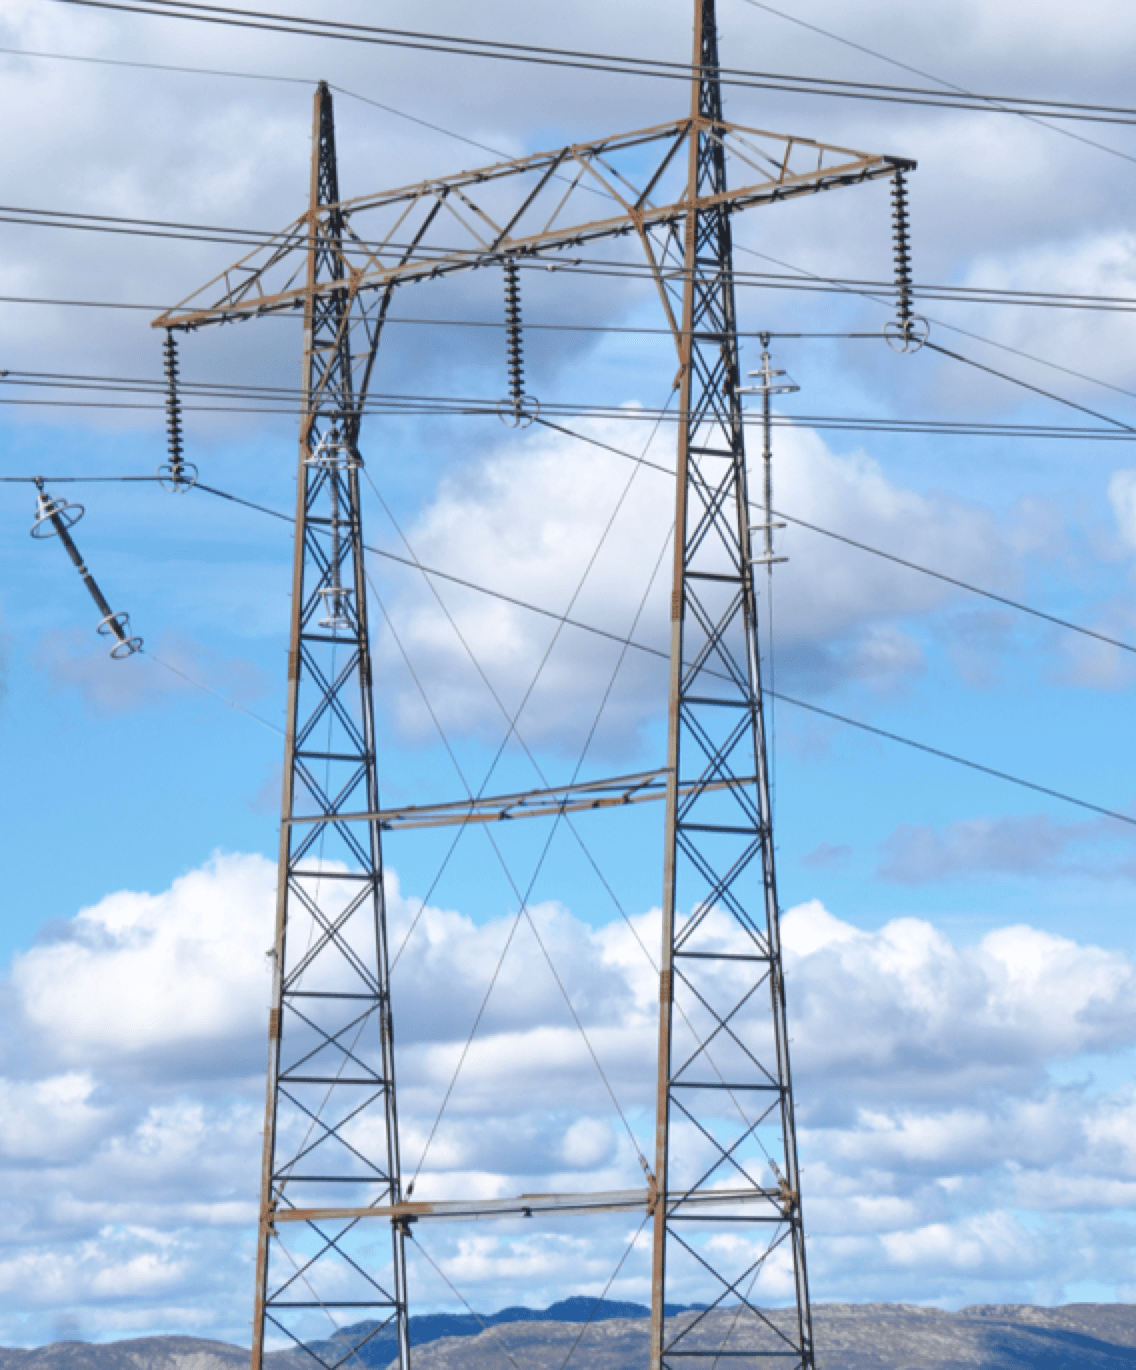 Learn About Mechanical Testing of Connection Leads for Transmission Line Arresters at the 2019 INMR WORLD CONGRESS NGLA installations